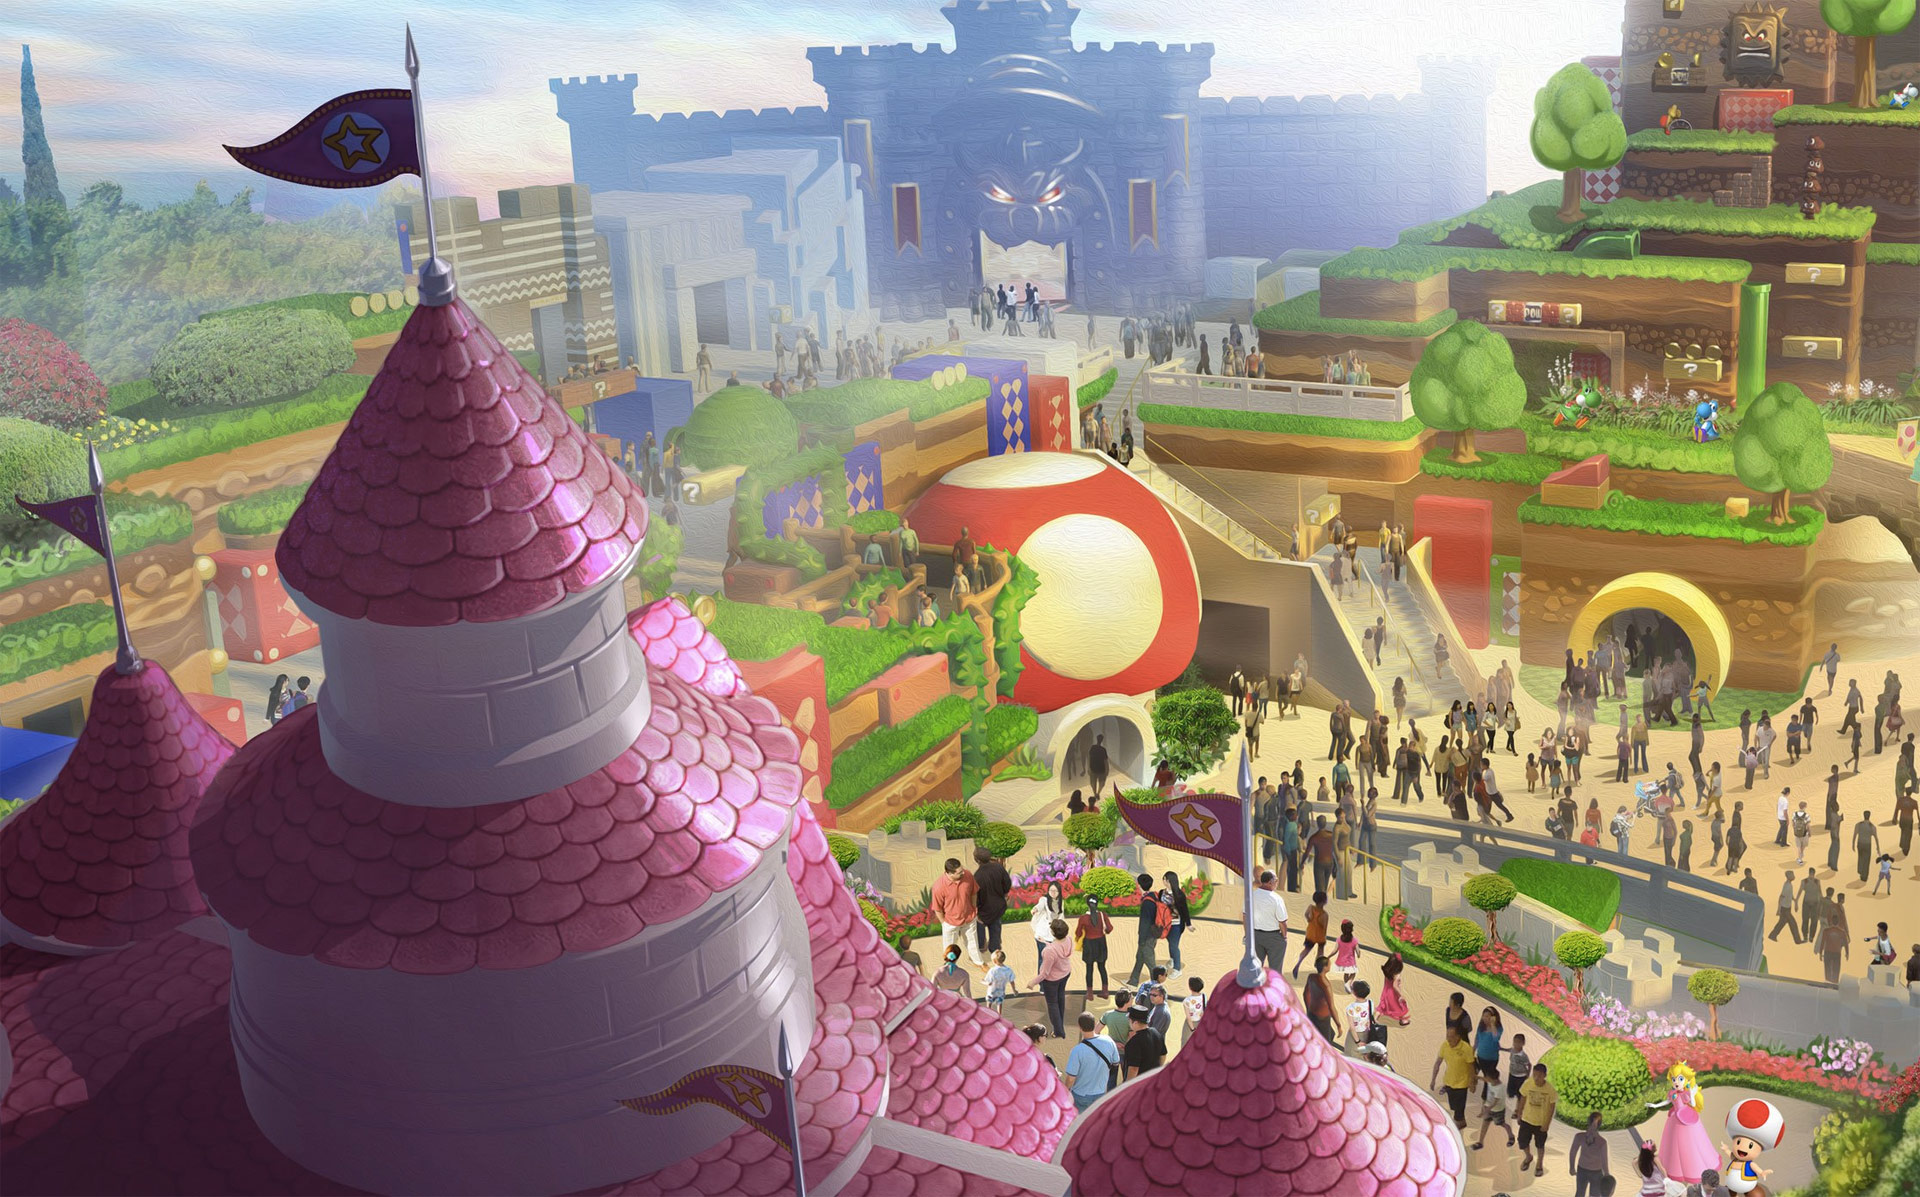 a render of the Super Nintendo World theme park, with Peach's castle overlooking the rest of a theme park crowded with people